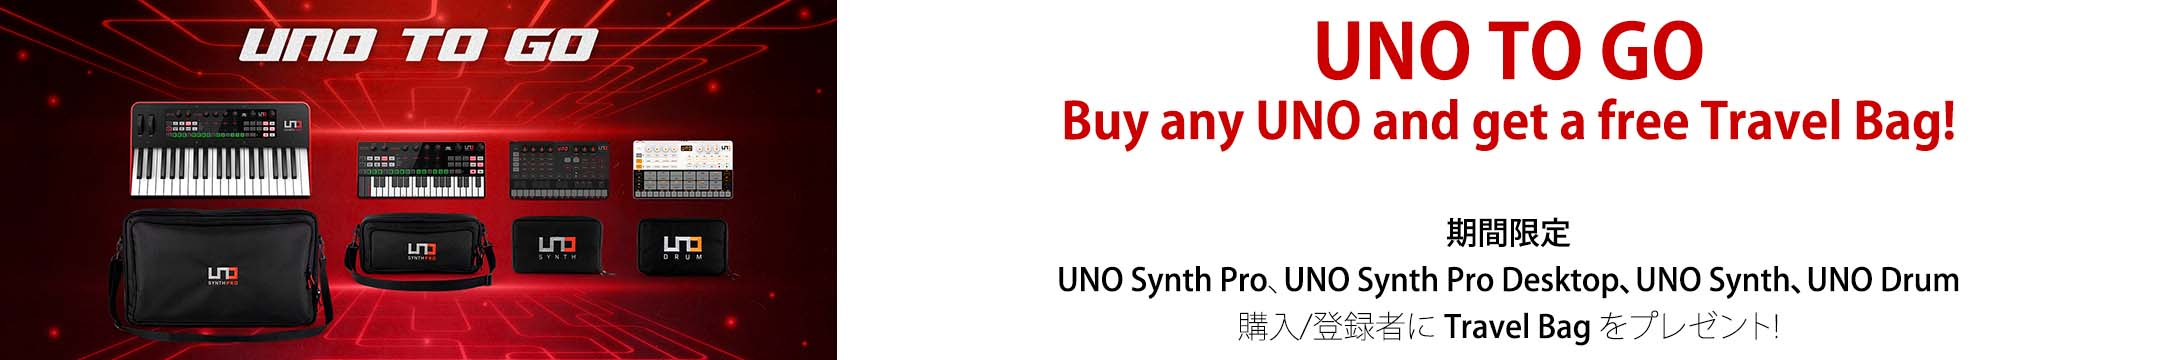 UNO-Synth-Pro-BAG-1090x180-2@2x